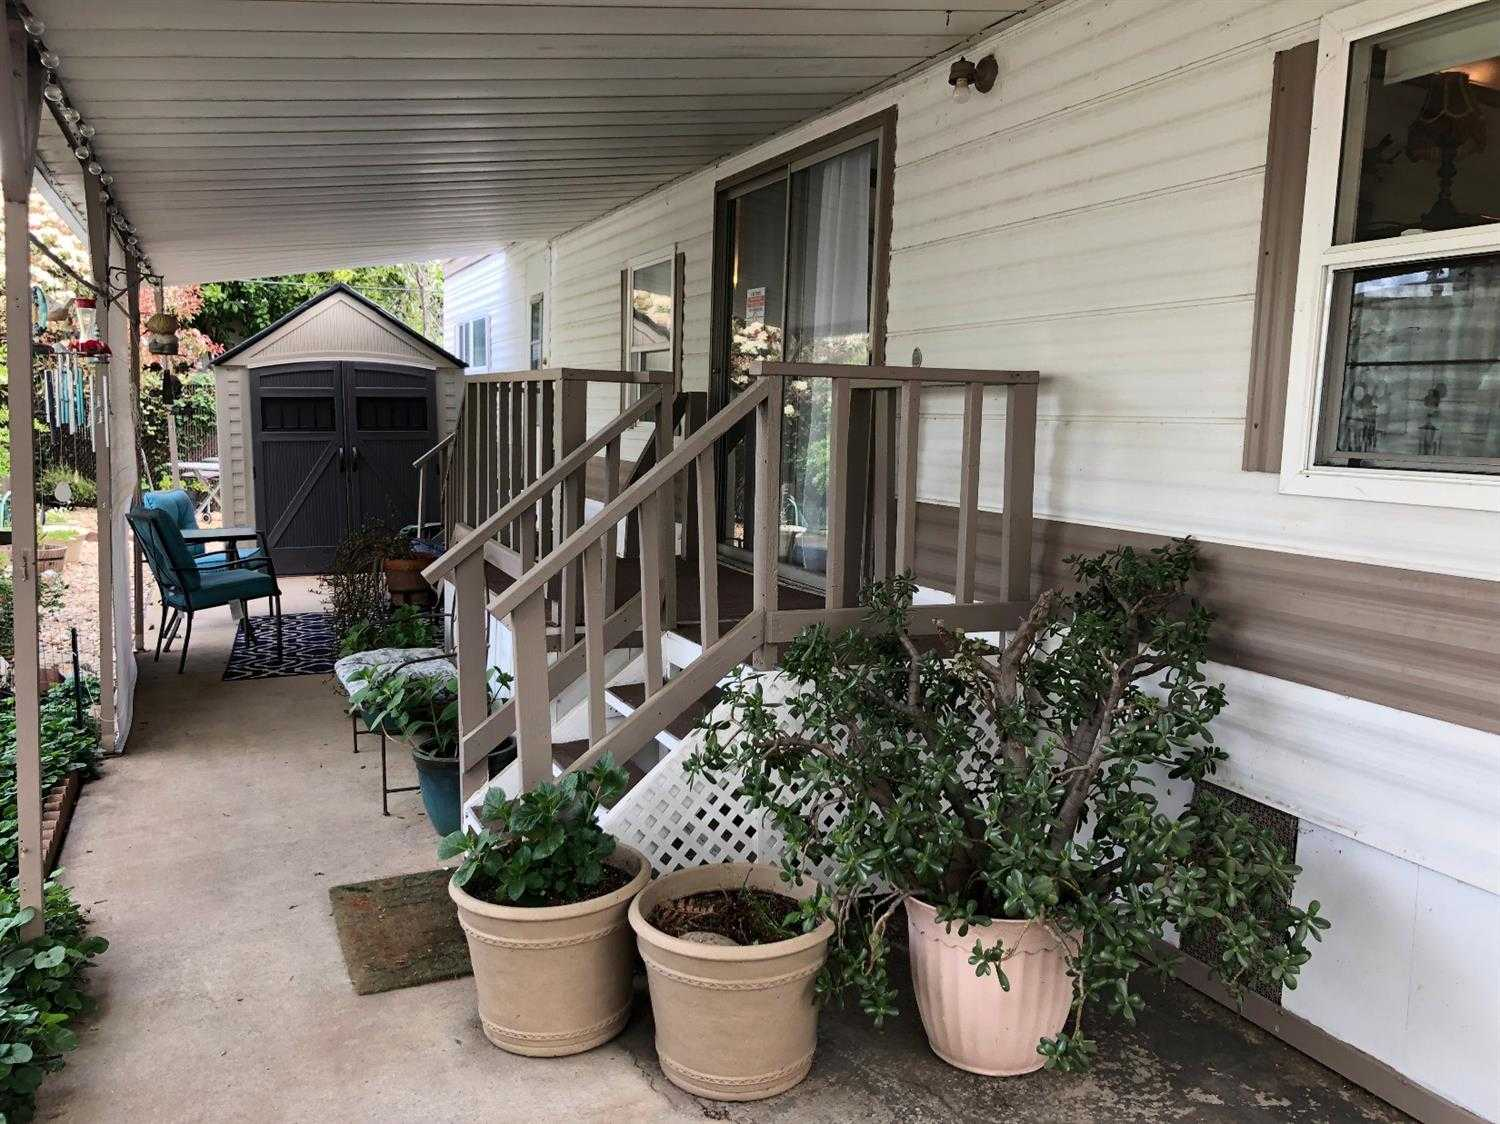 $24,500 - 1Br/1Ba -  for Sale in Ione